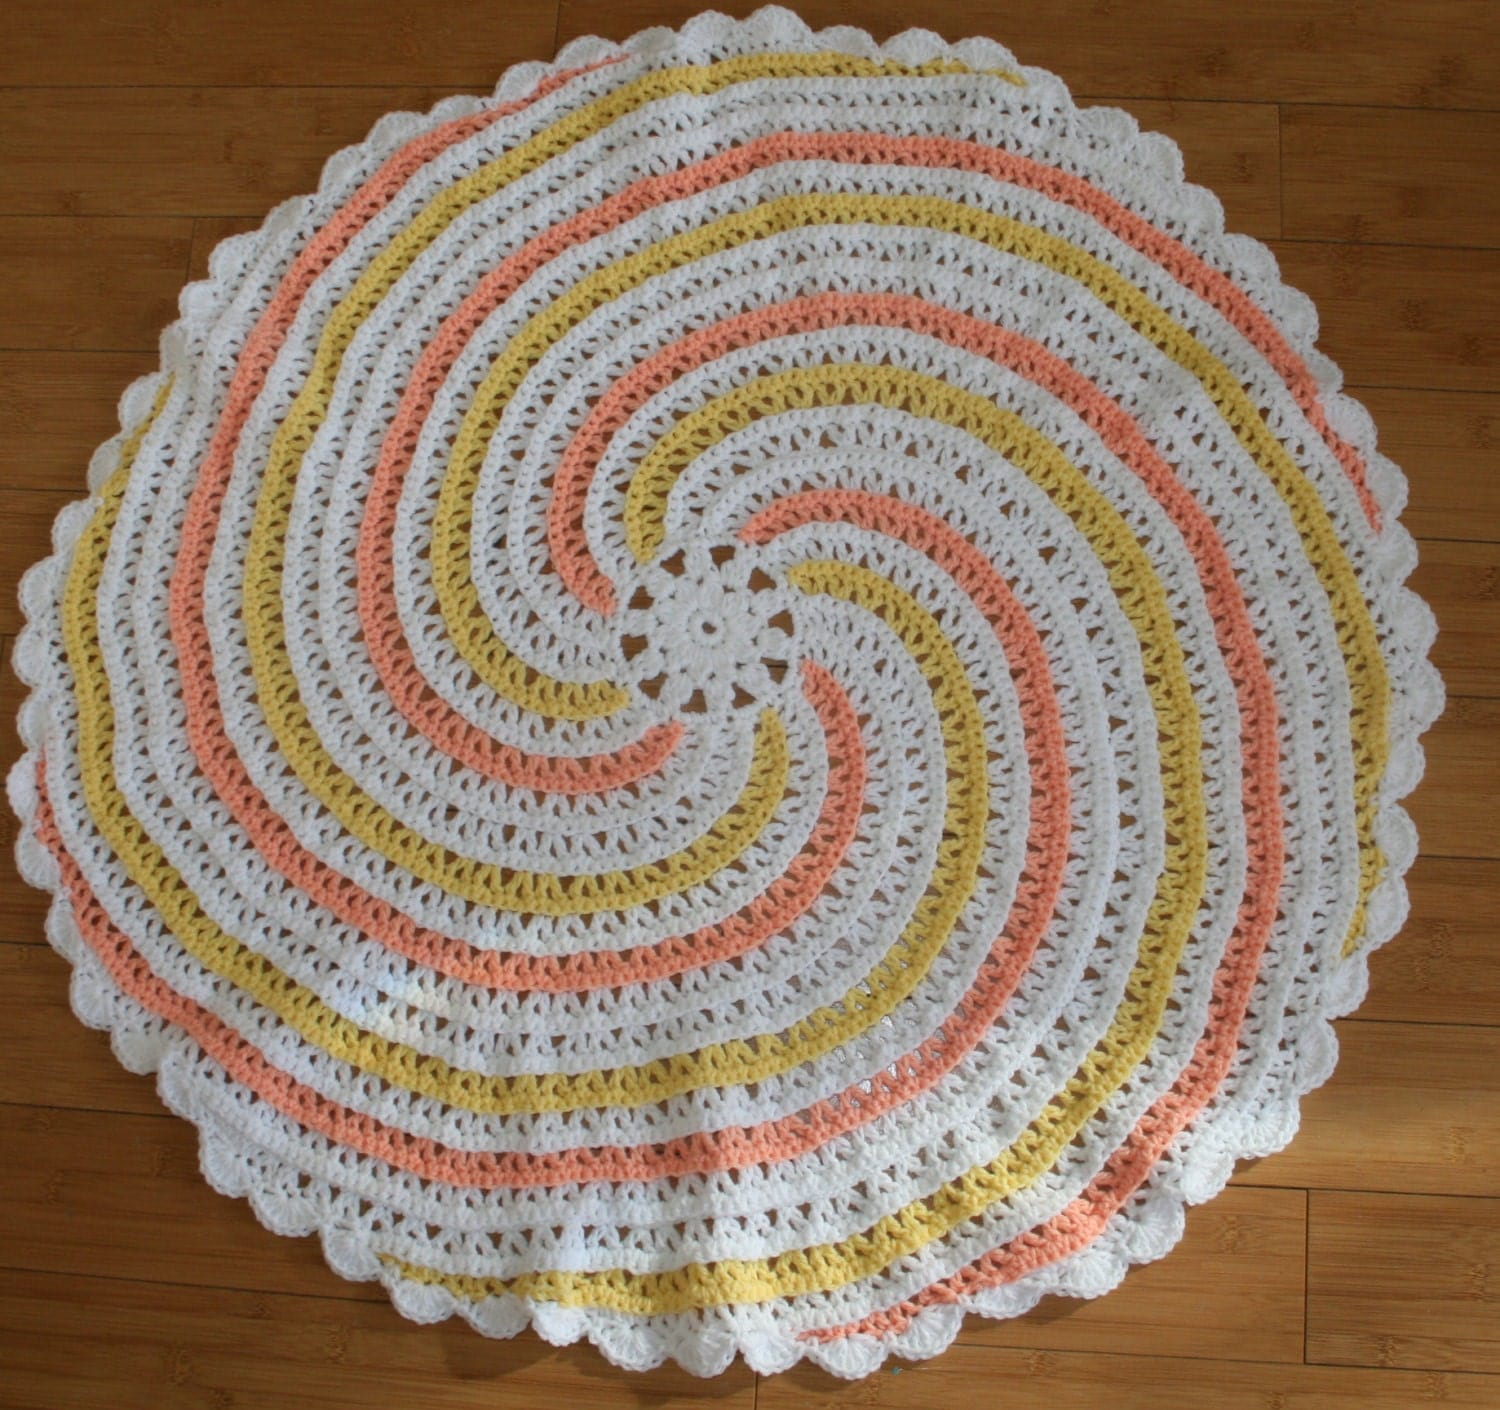 Spiral crochet baby blanket pattern instant pdf dowload round this is a digital file bankloansurffo Images